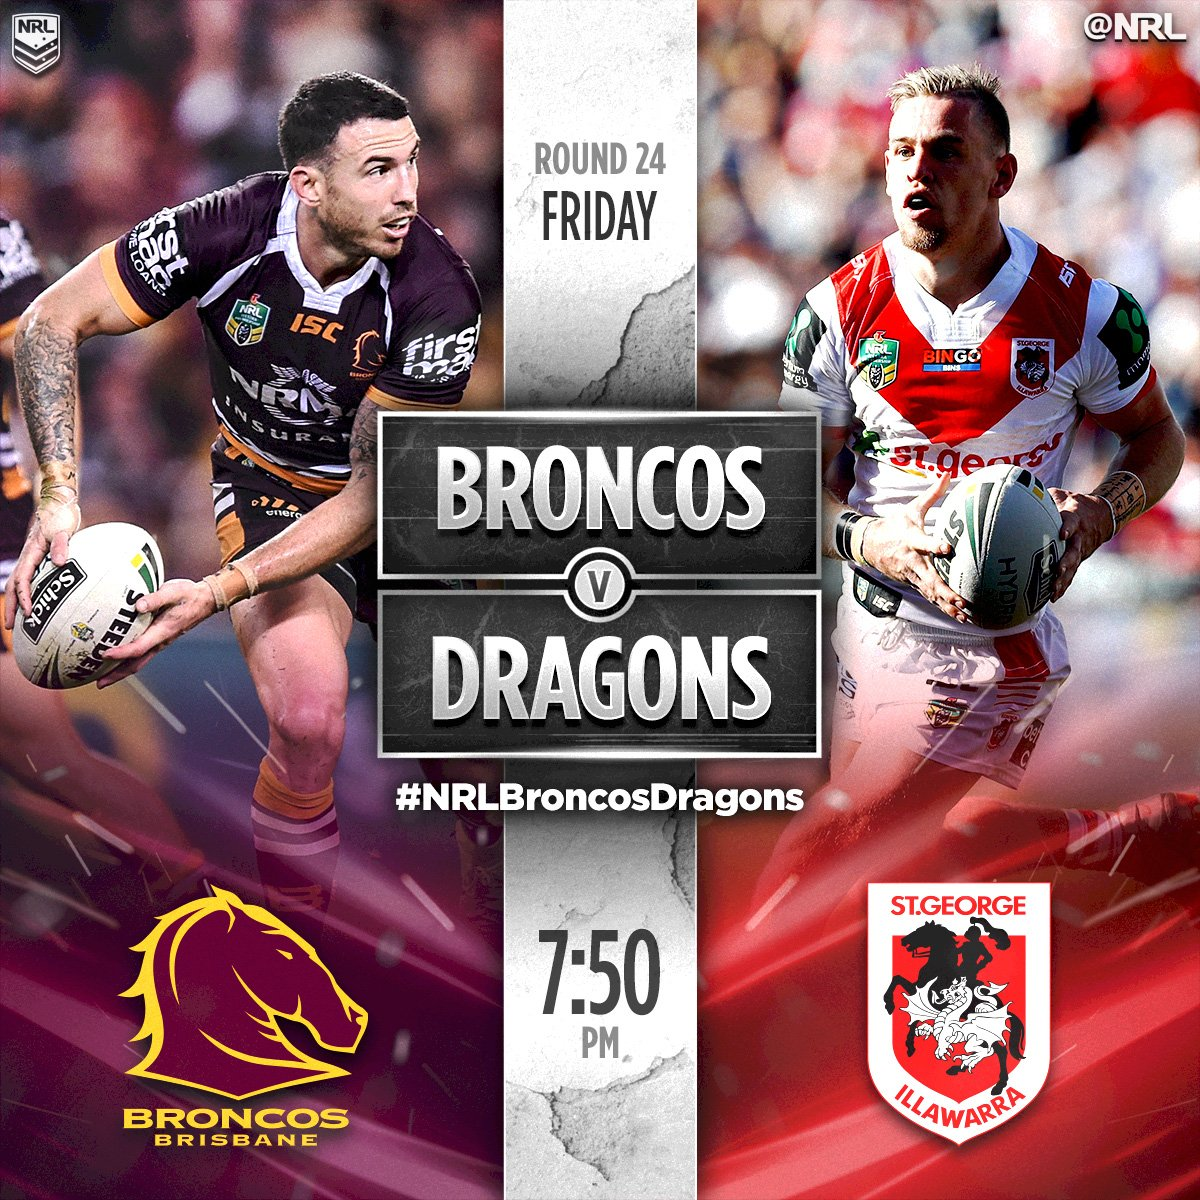 BIG GAME  #NRLBroncosDragons is next from @suncorpstadium!  #NRL https...